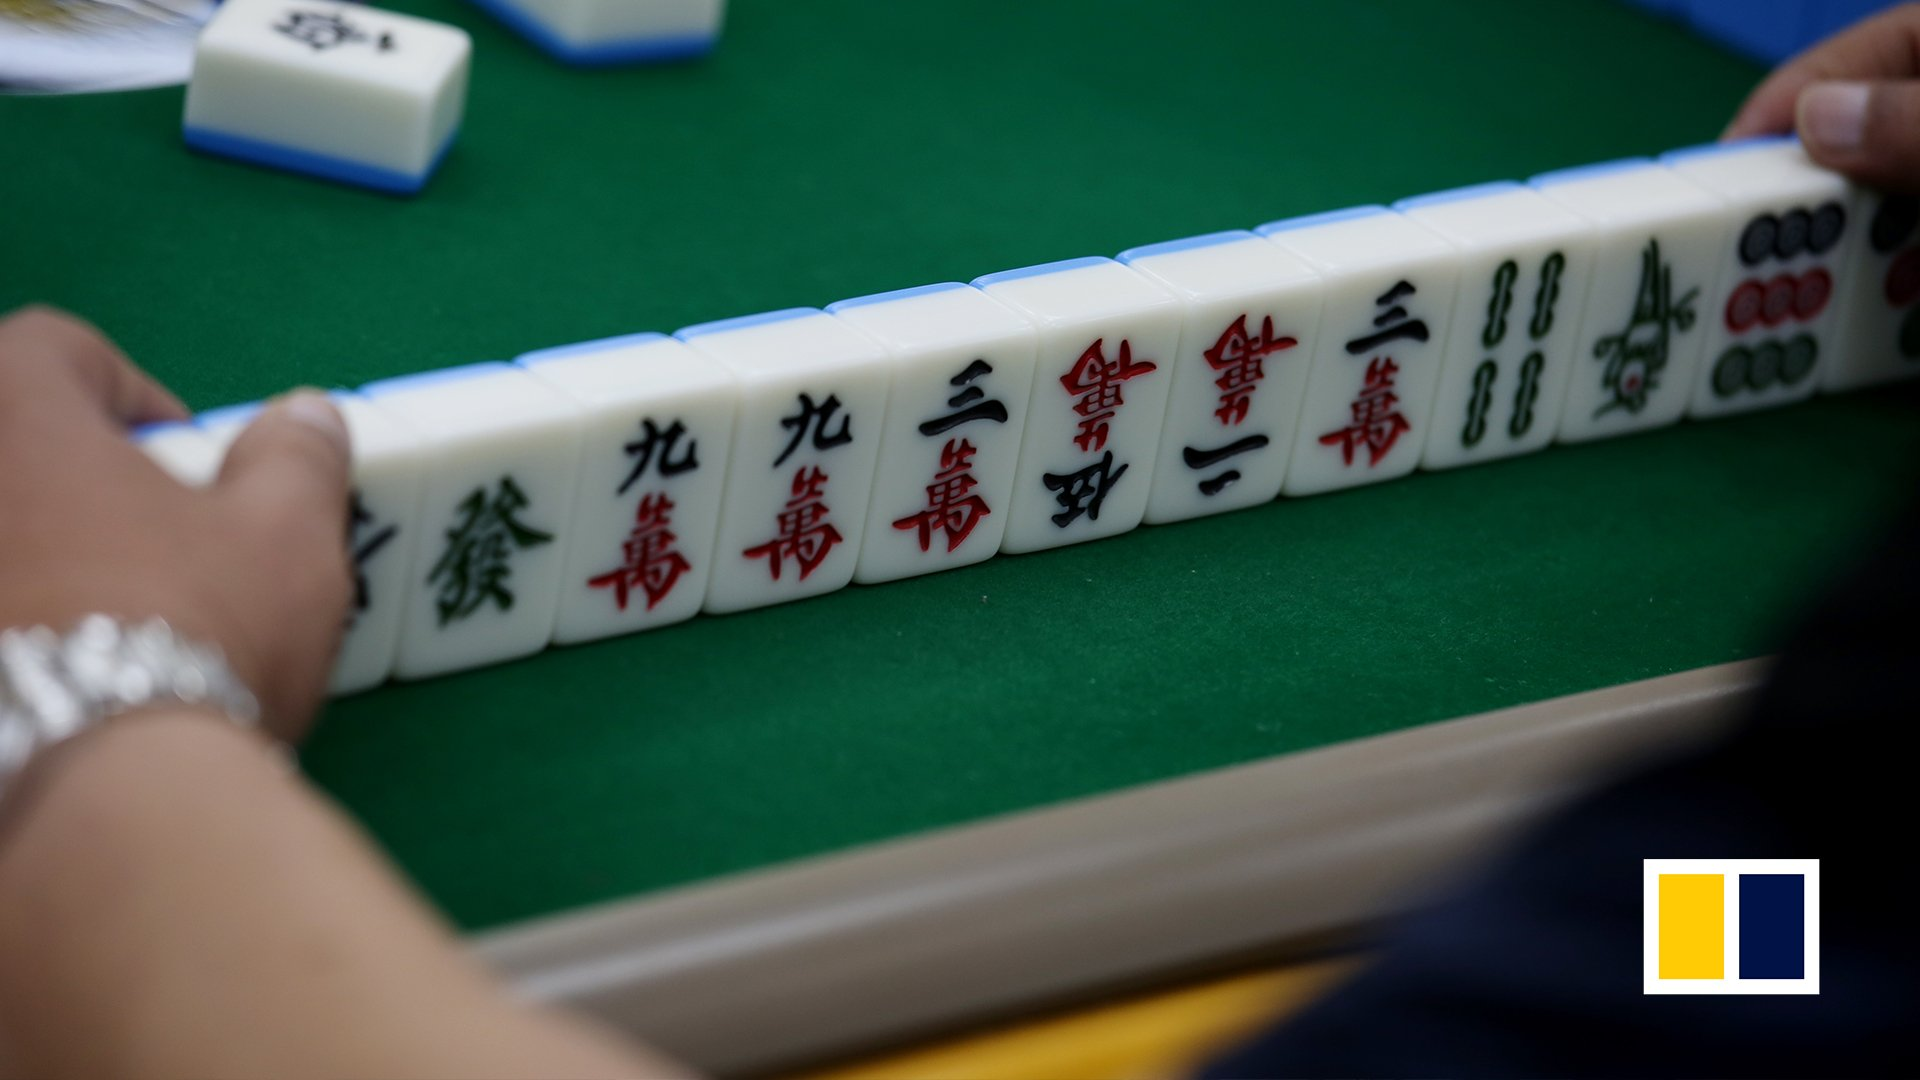 Learn to play mahjong in 2 5 minutes